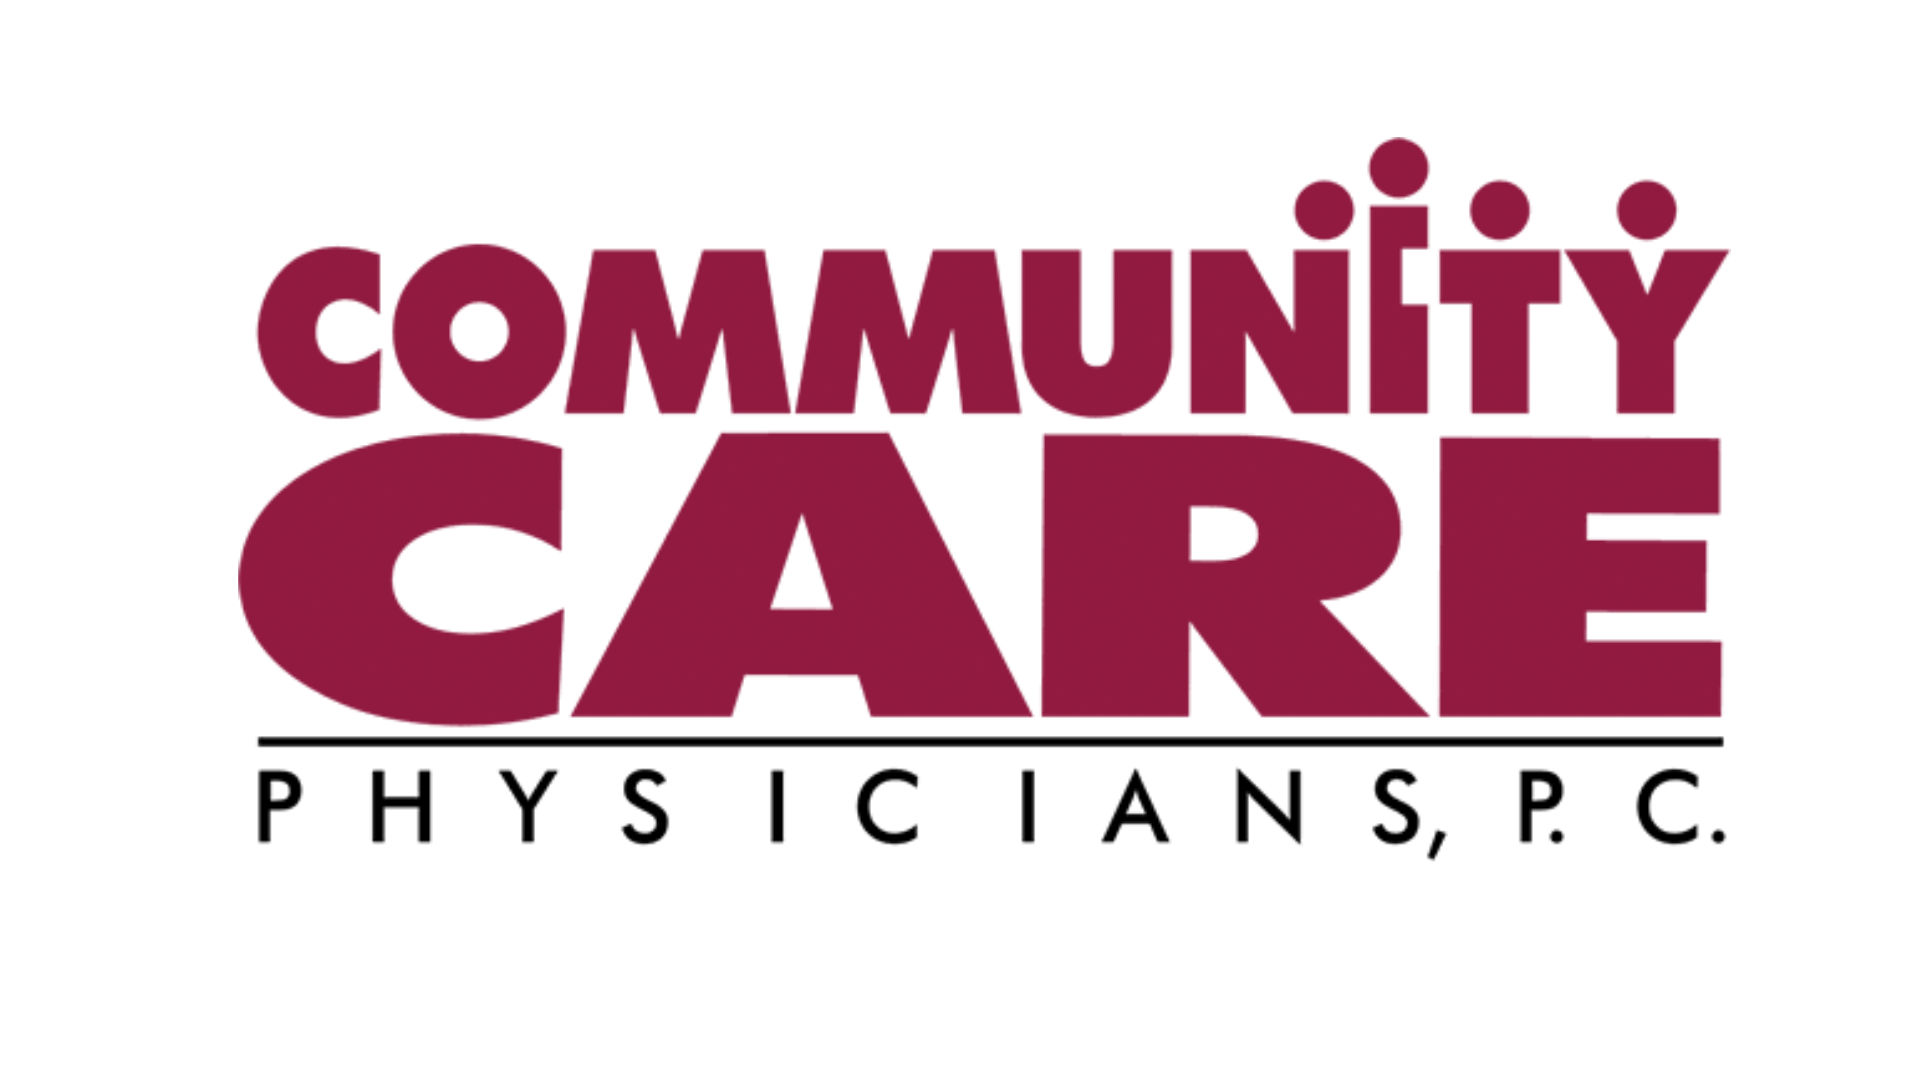 Community Care Logo_1551456325935.jpg.jpg